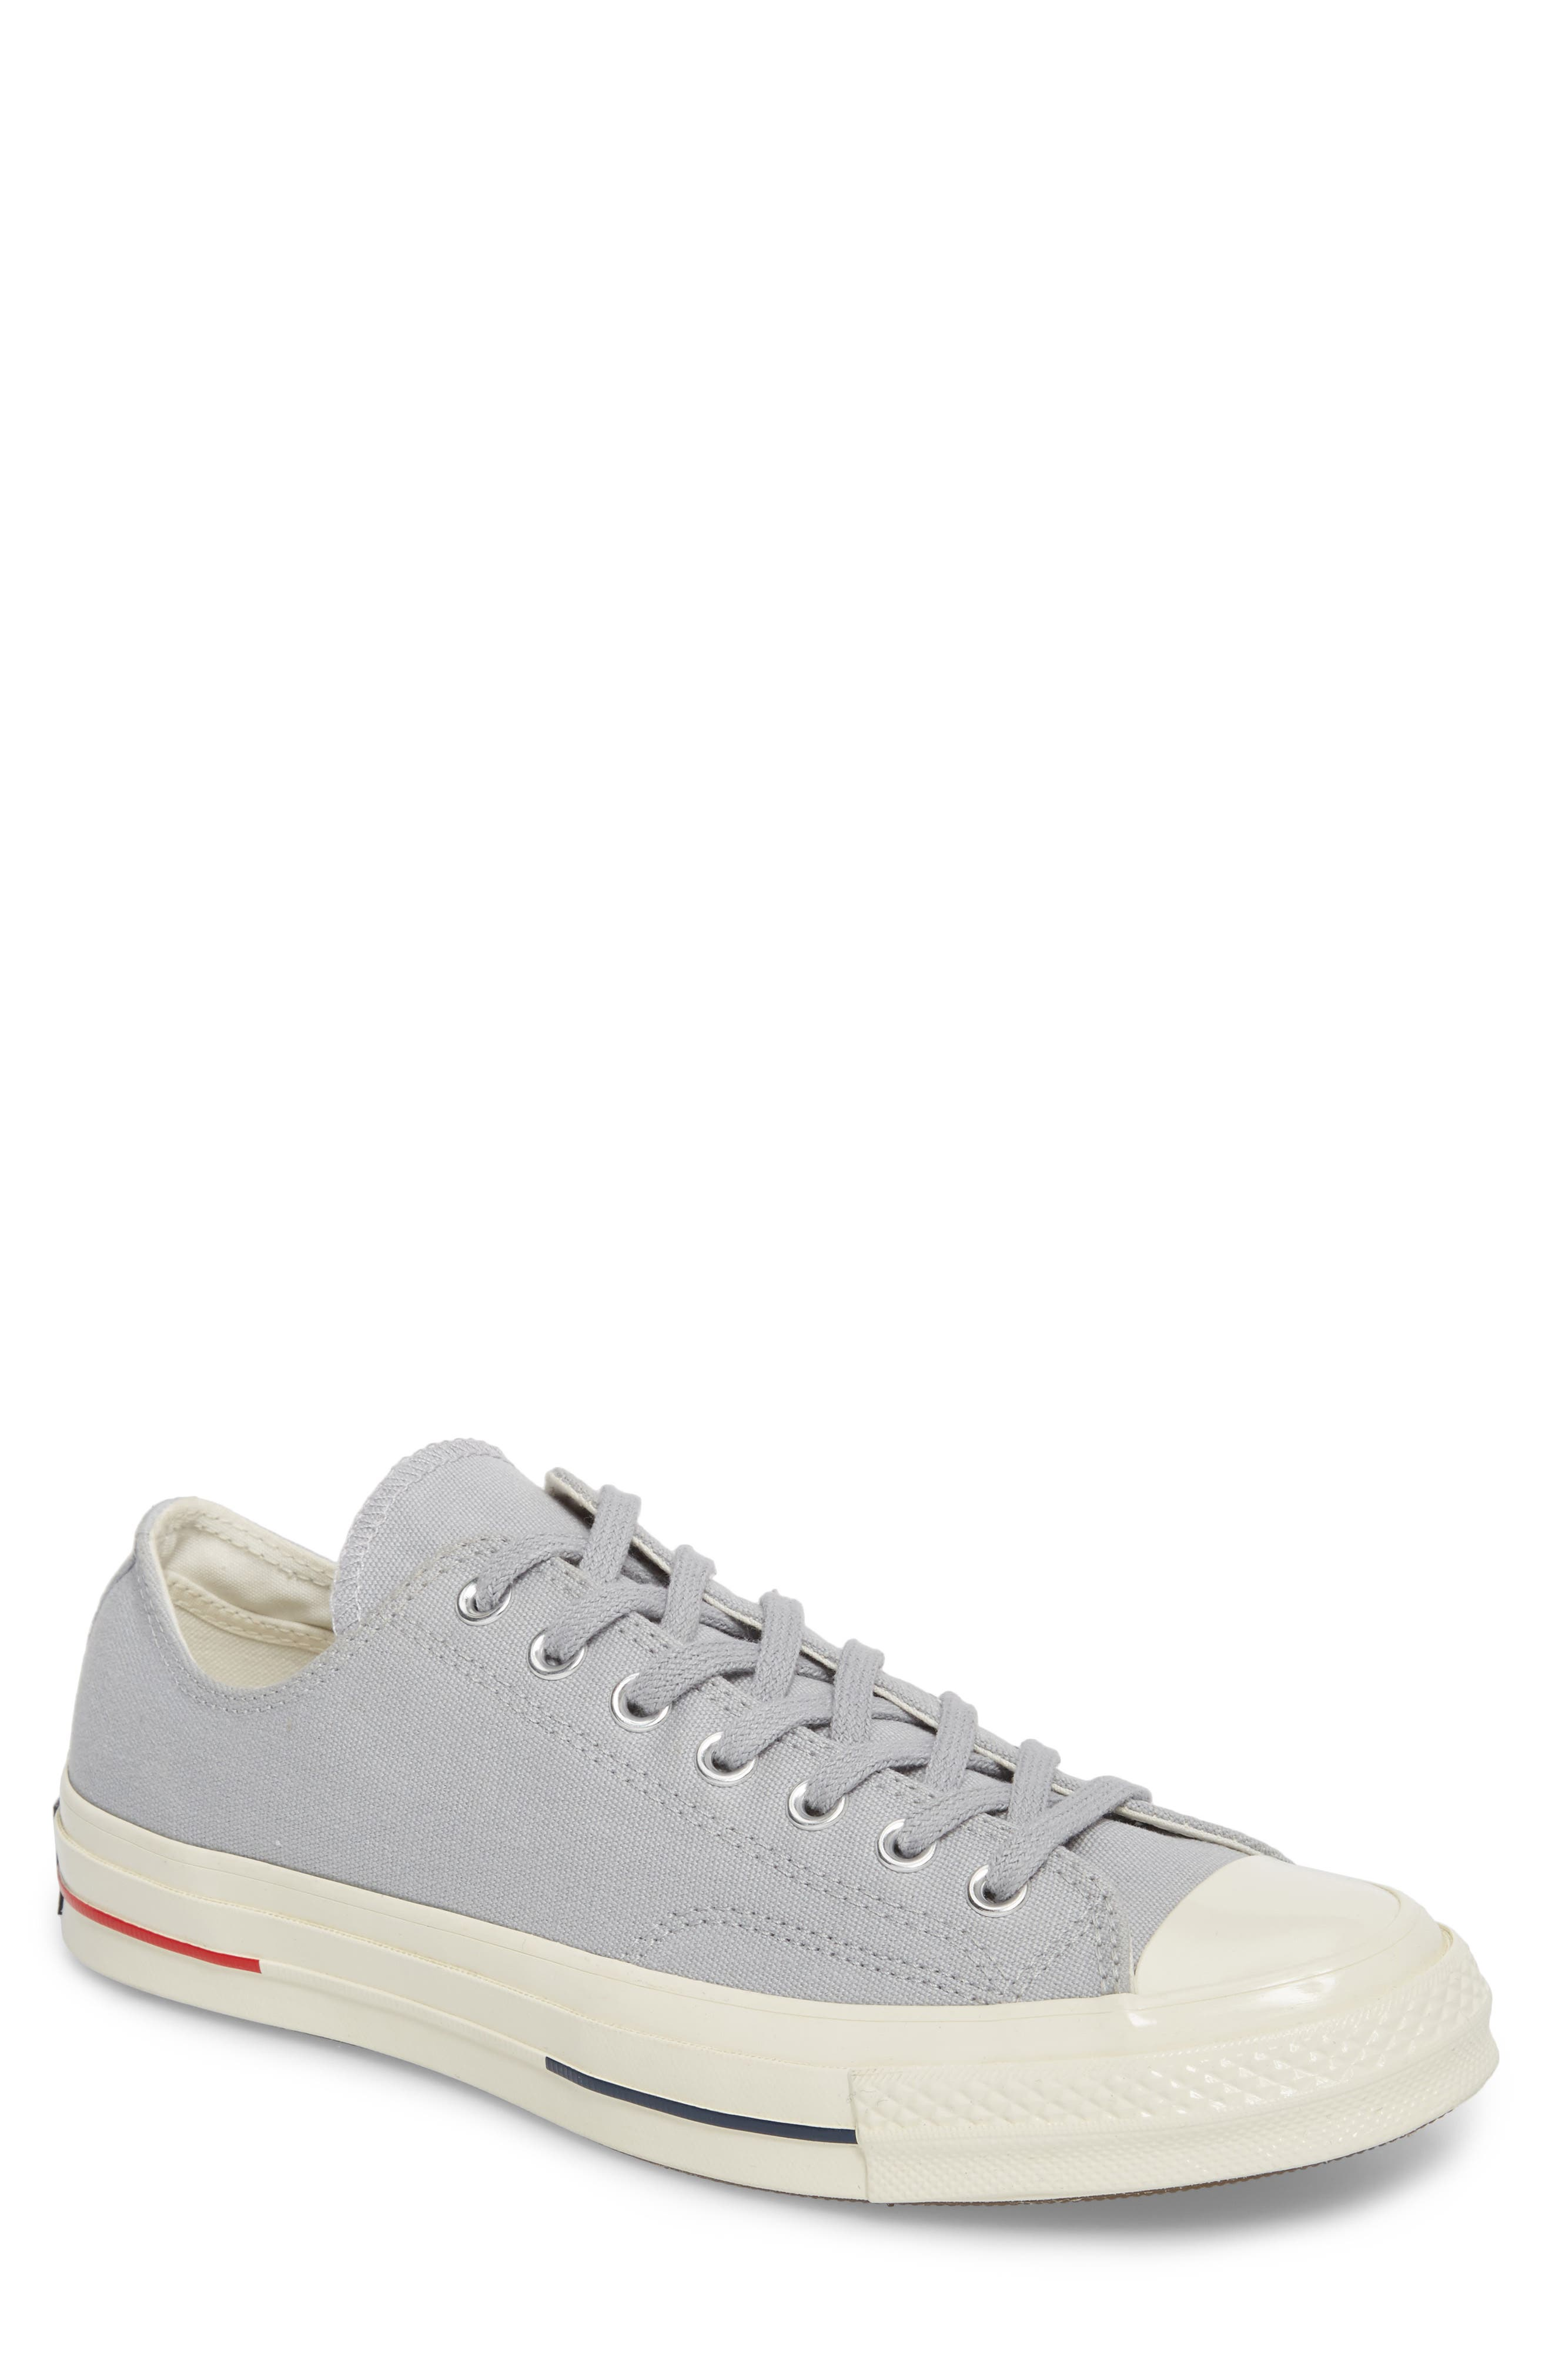 CONVERSE Chuck Taylor<sup>®</sup> All Star<sup>®</sup> 70 Heritage Low Top Sneaker, Main, color, 097